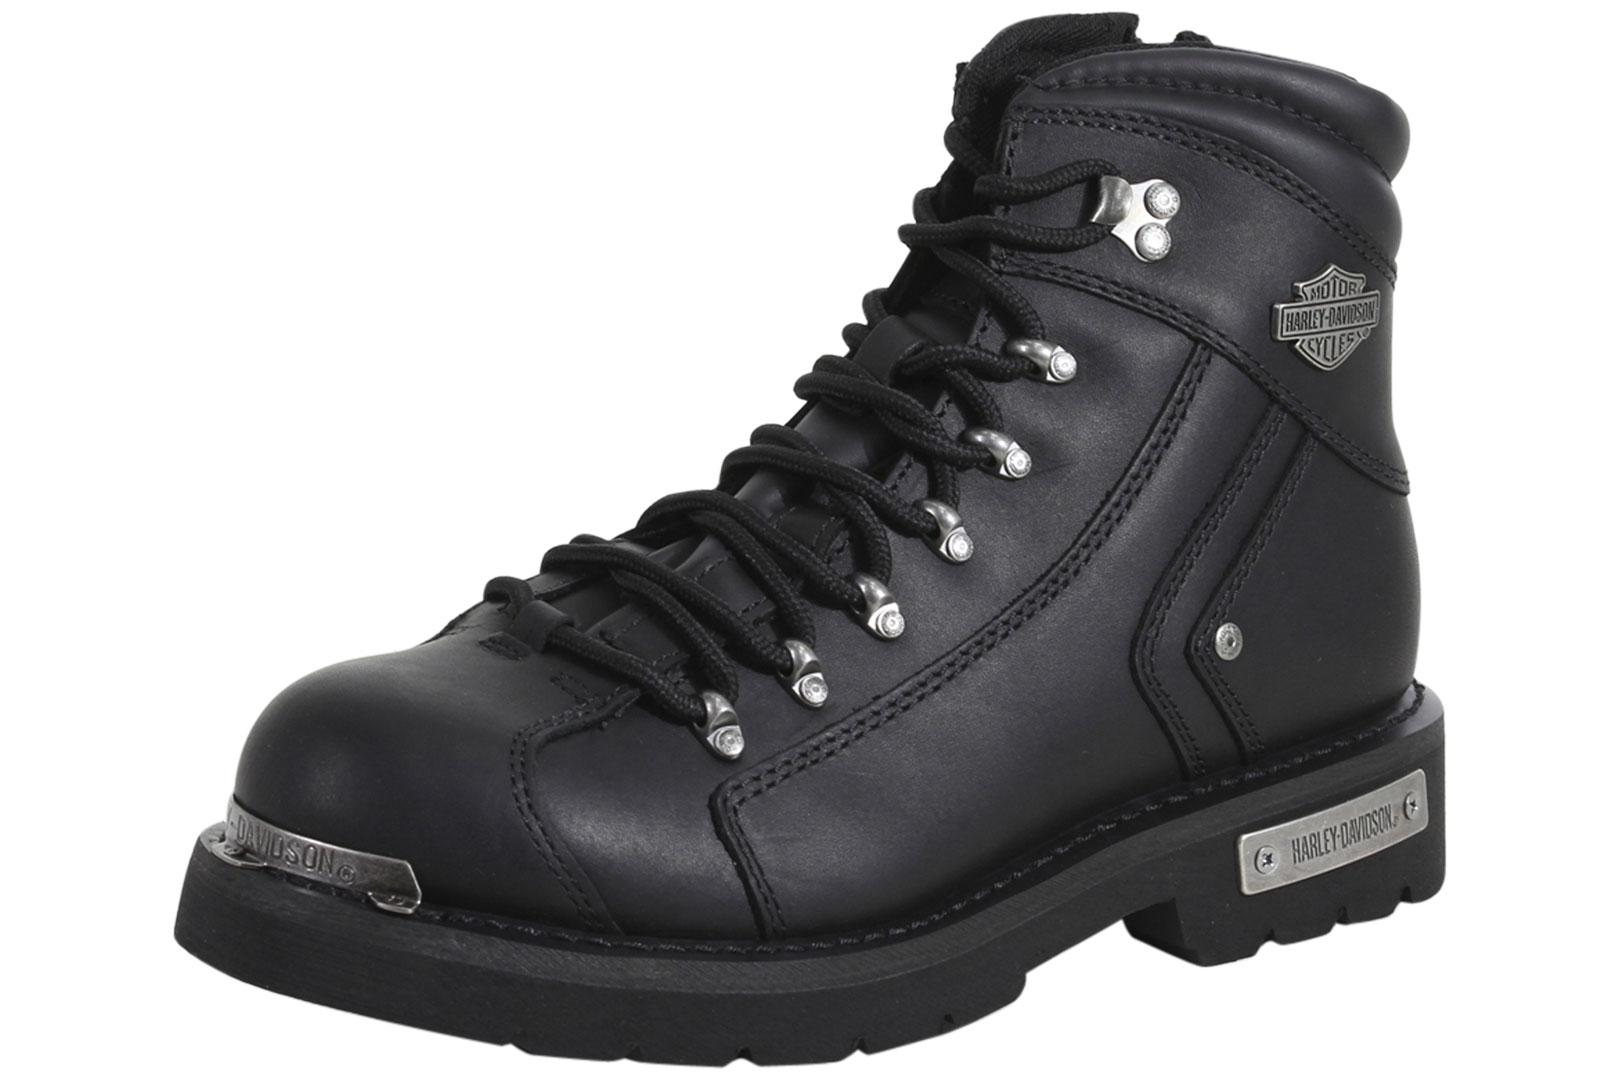 9c706966530 Harley-Davidson Men's Electron Motorcycle Boots Shoes